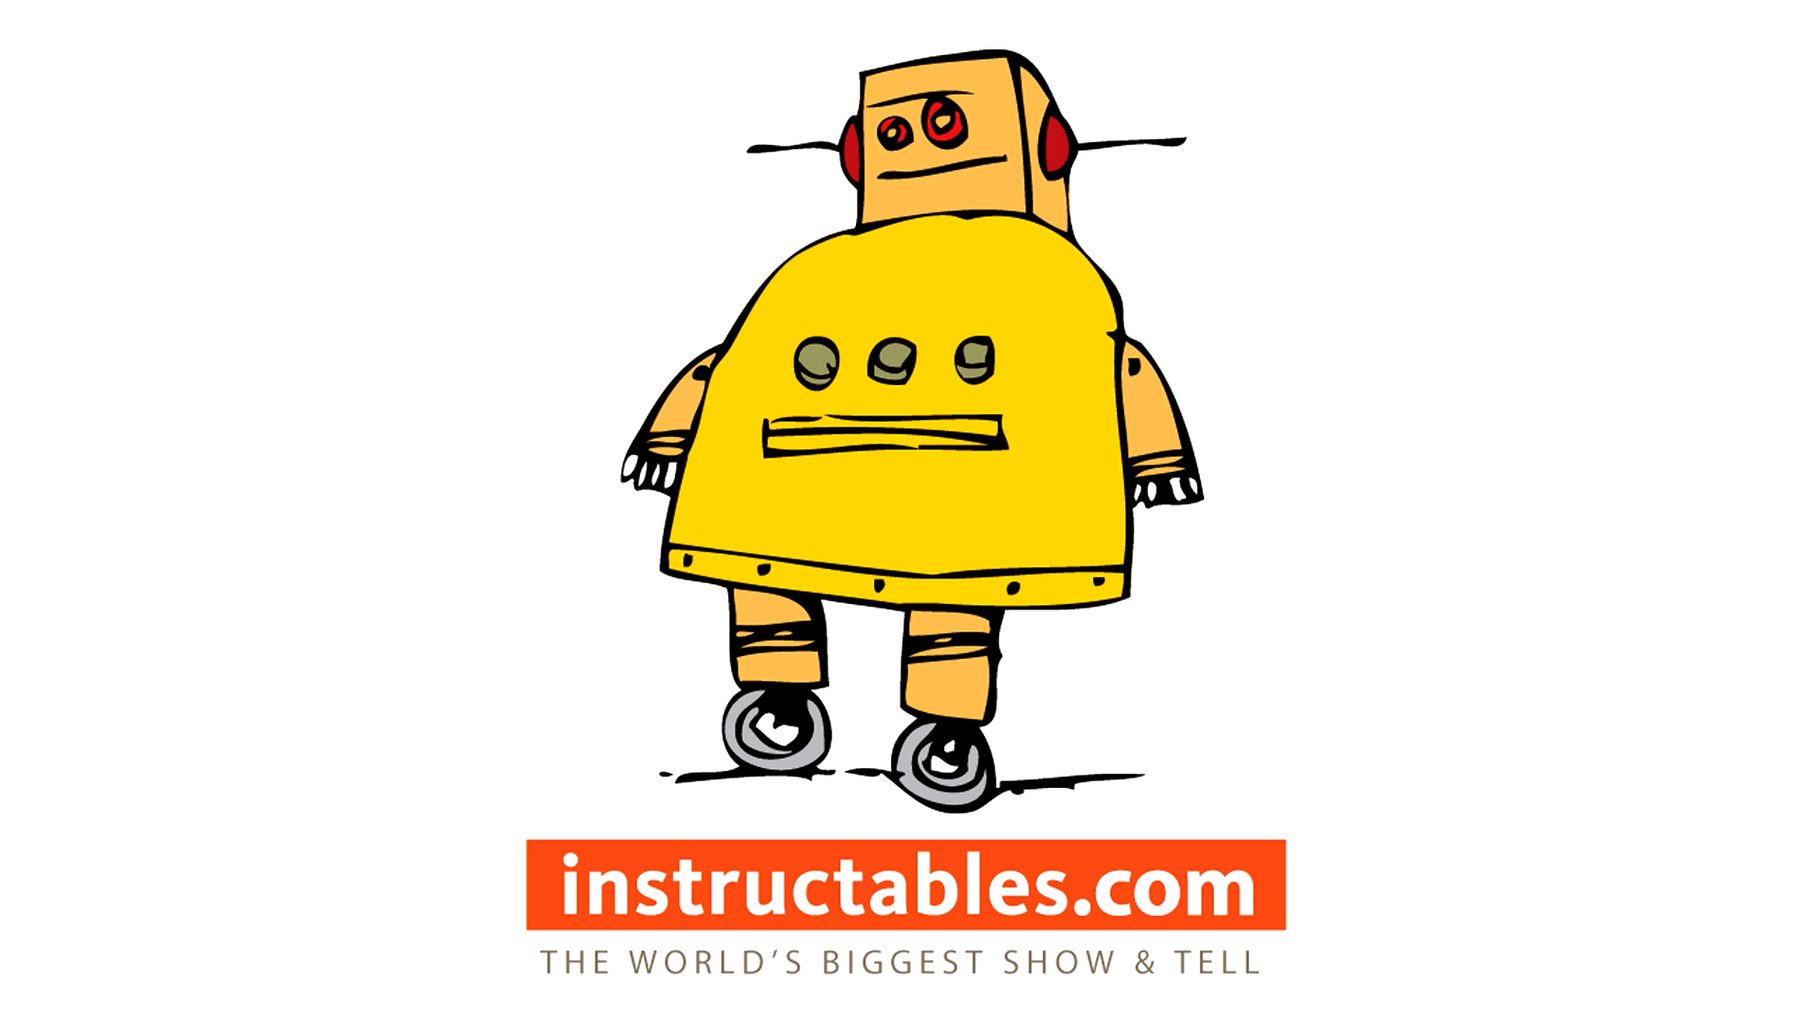 Stay Tuned for More Instructable Video Tutorials